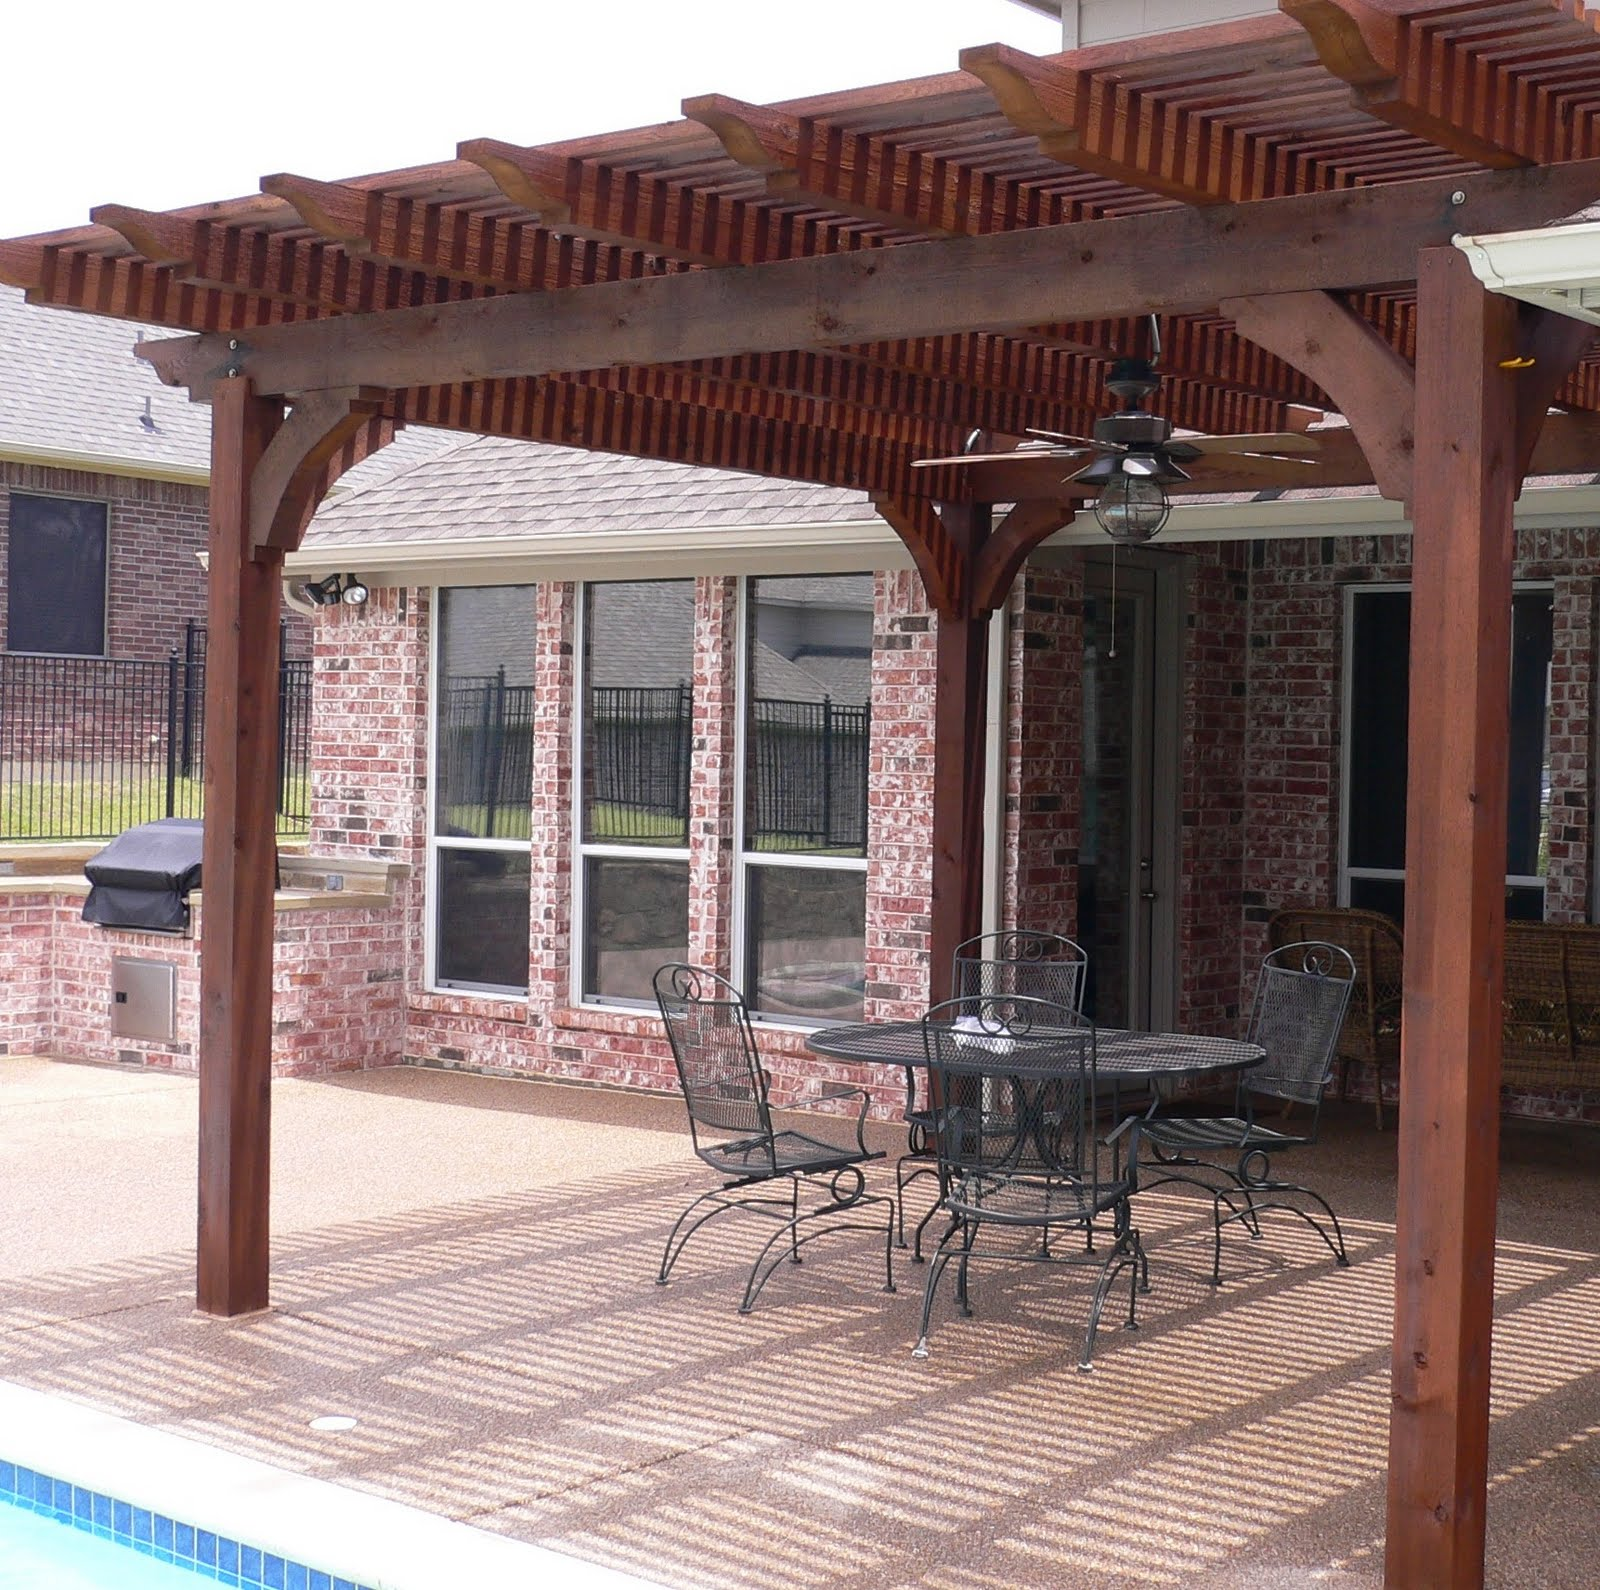 patio roof designs: Liven Up Your Patio - Wooden Patio Covers on Backyard Patio Cover Ideas  id=79841